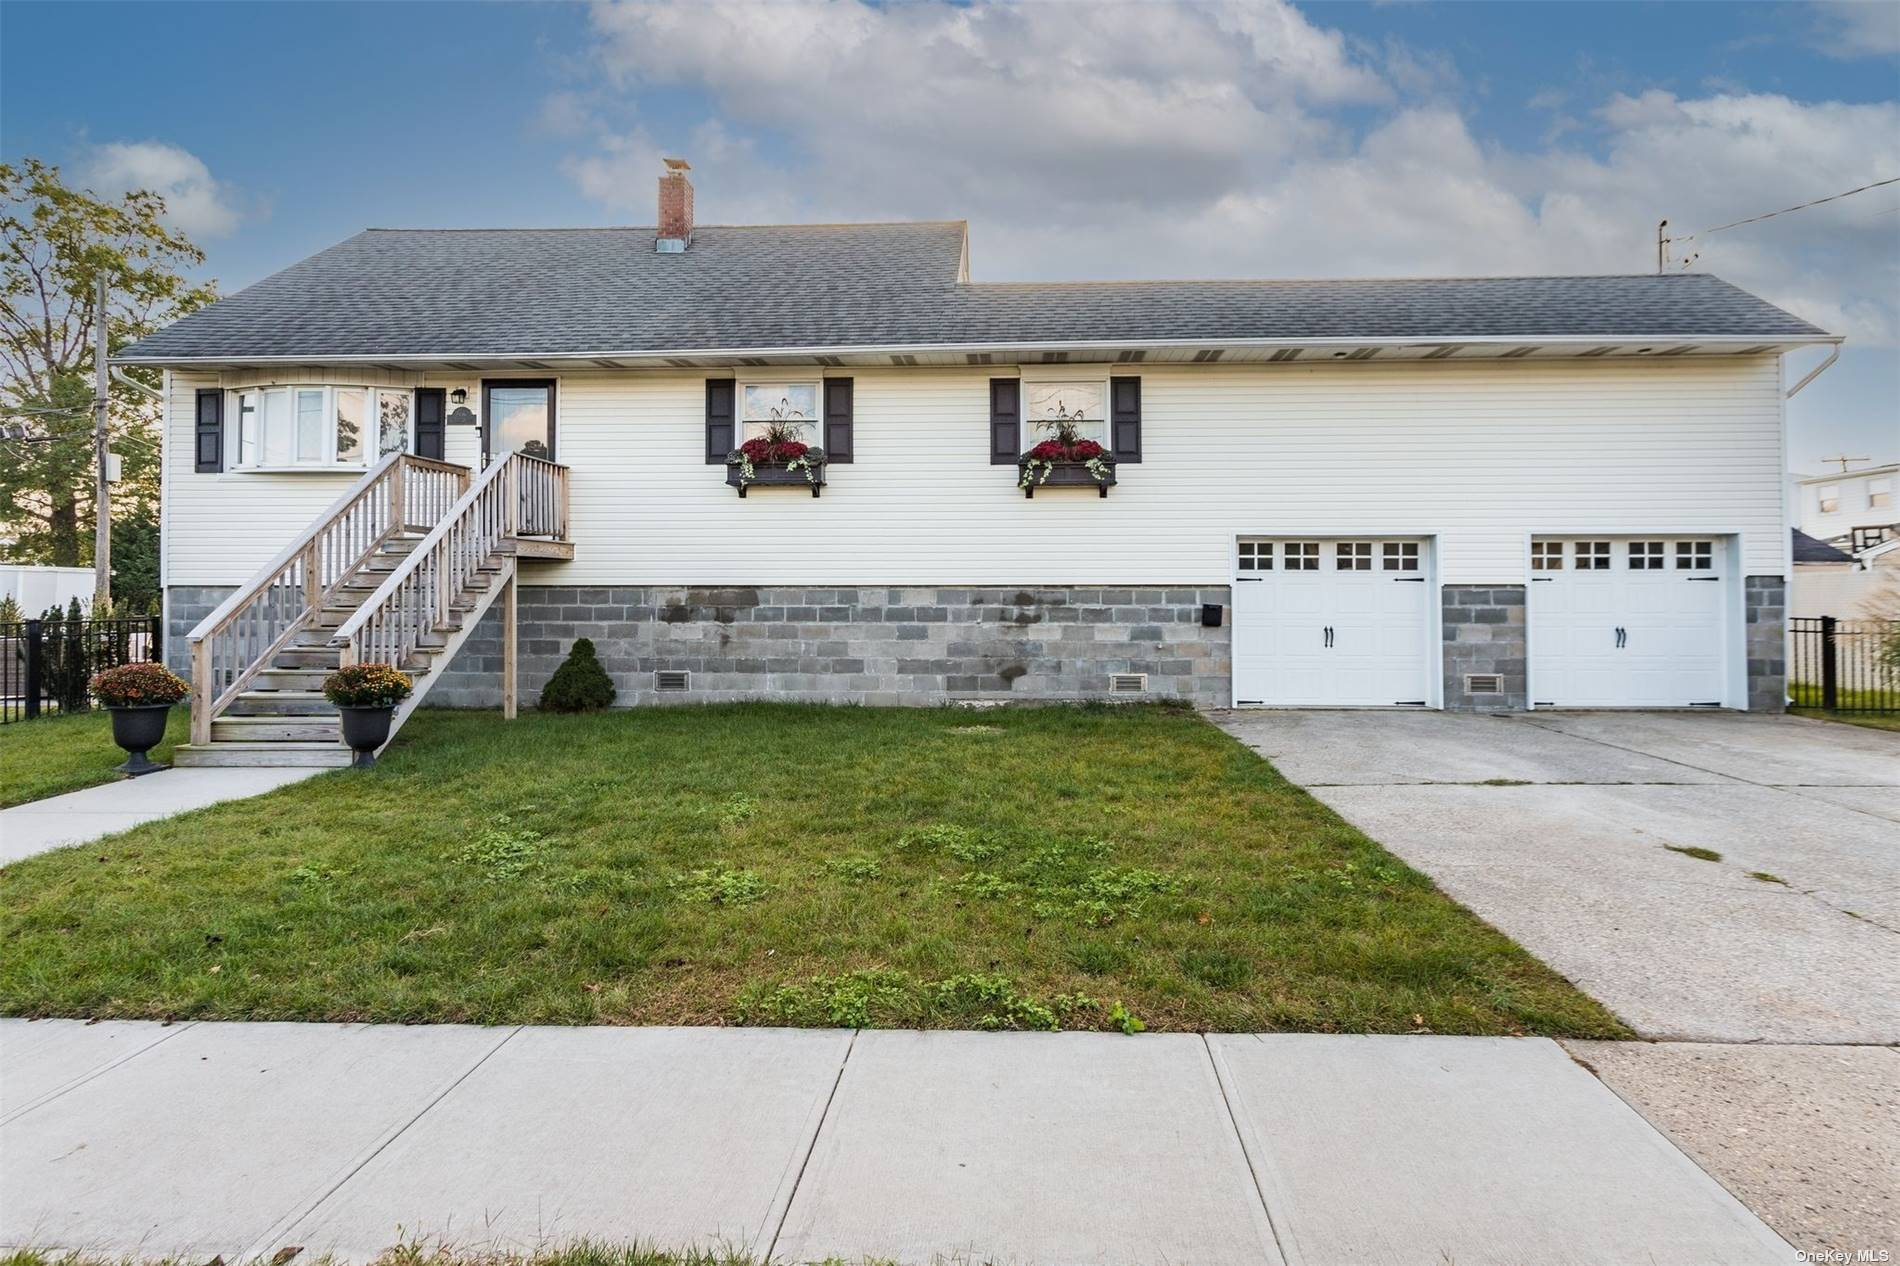 Raised expanded cape with renovated kitchen,stainless steel appliances, 6 burner stove w/griddle & 2 ovens, washer/dryer. 3 bdrm 2 full bath.